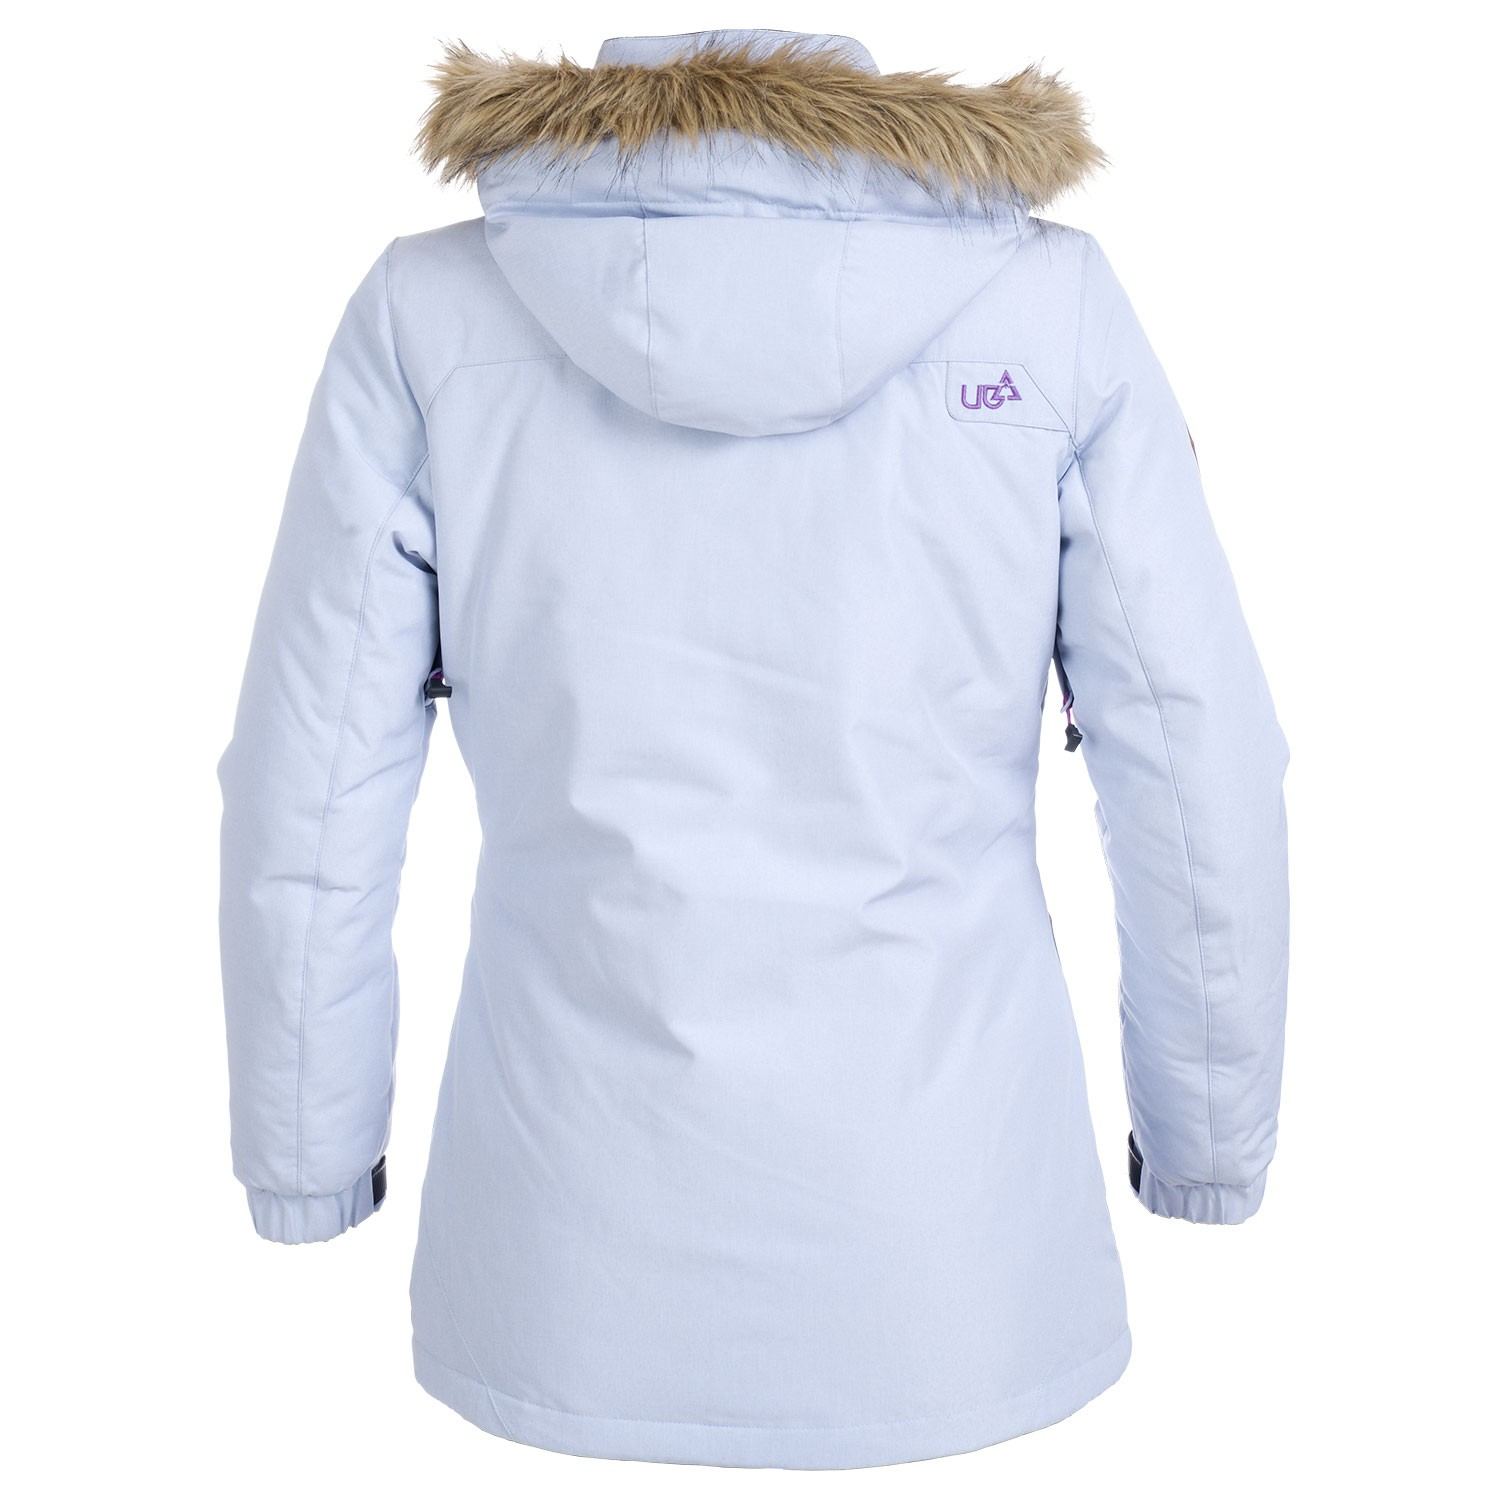 32152276848 Womens Lilac Snowboarding Jacket Ebro- Free Delivery Over £20 ...